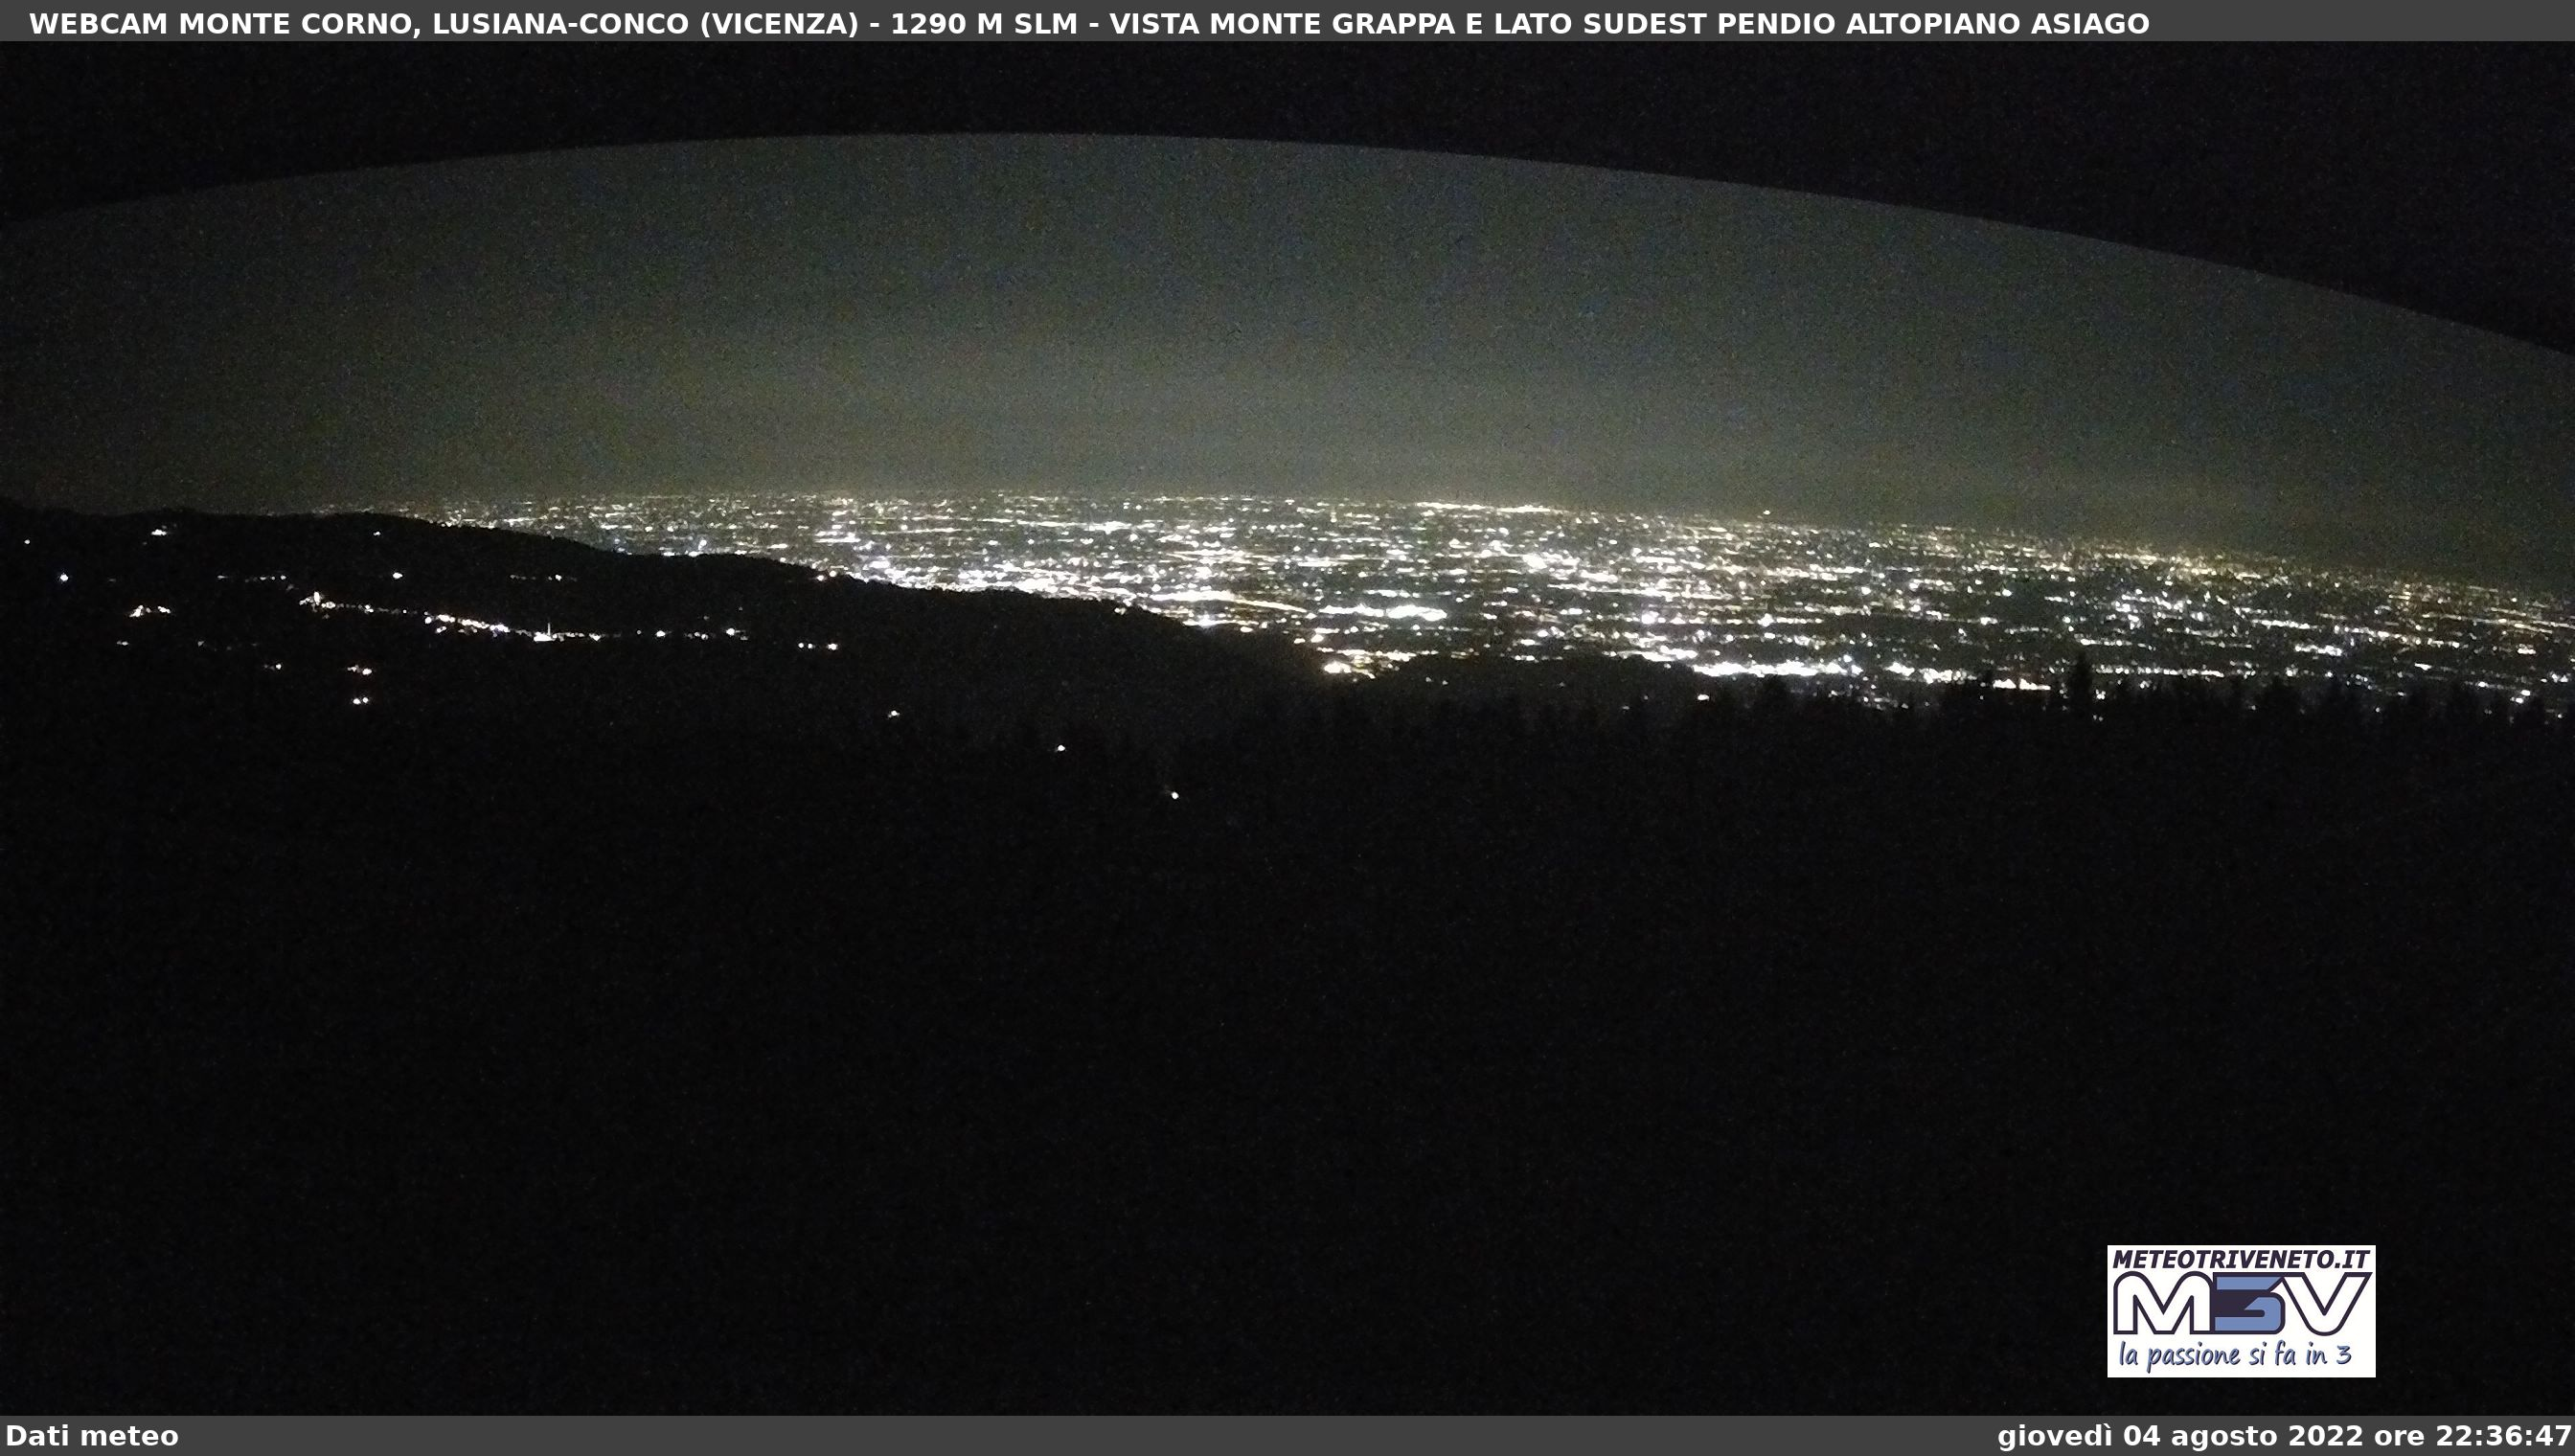 Webcam Monte Corno - Lusiana